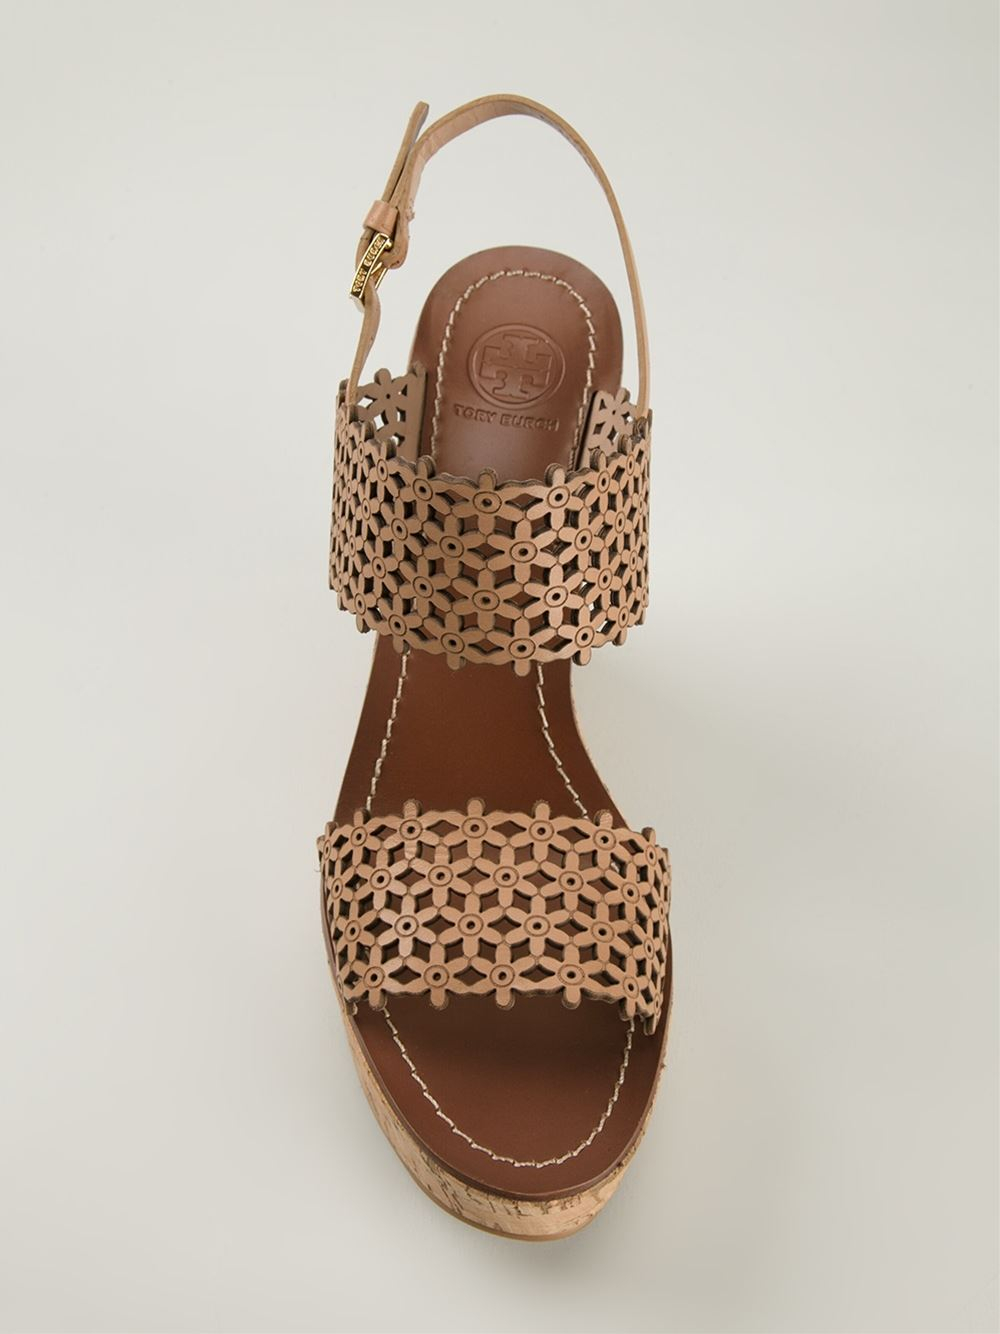 Tory Burch Floral Perforated Wedge Sandals In Brown Lyst